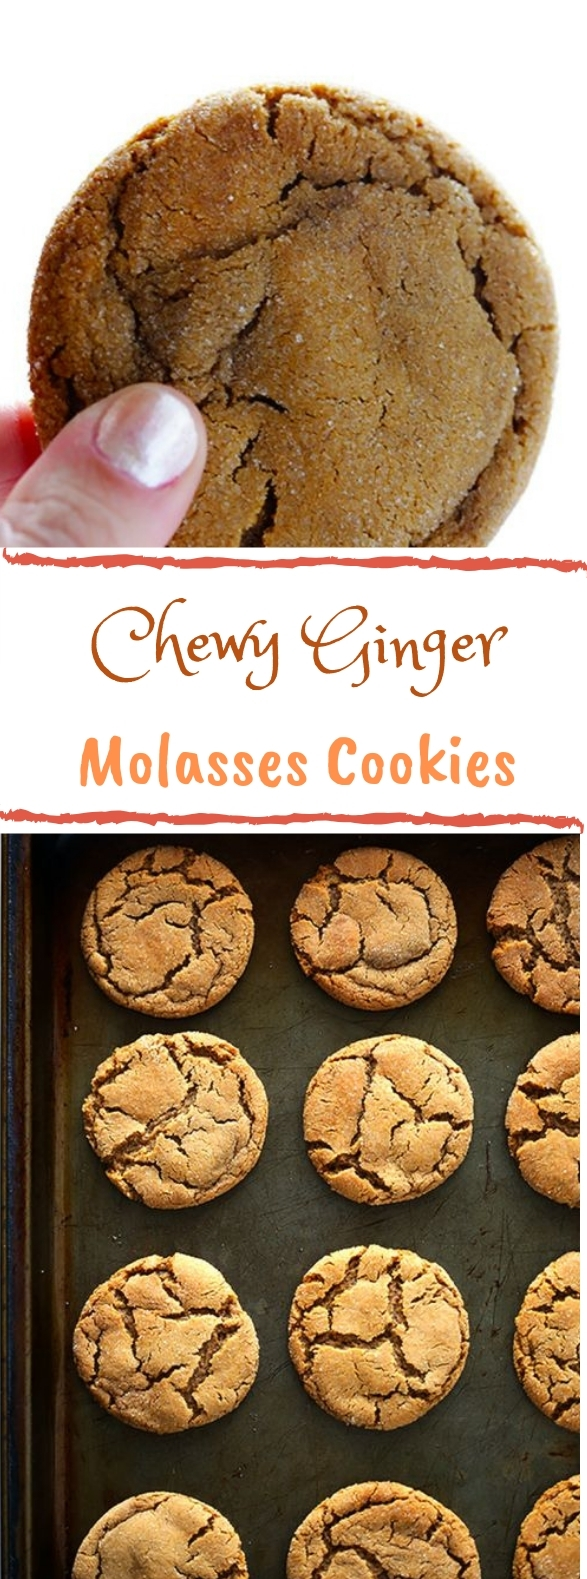 Chewy Ginger Molasses Cookies #ginger #cookies